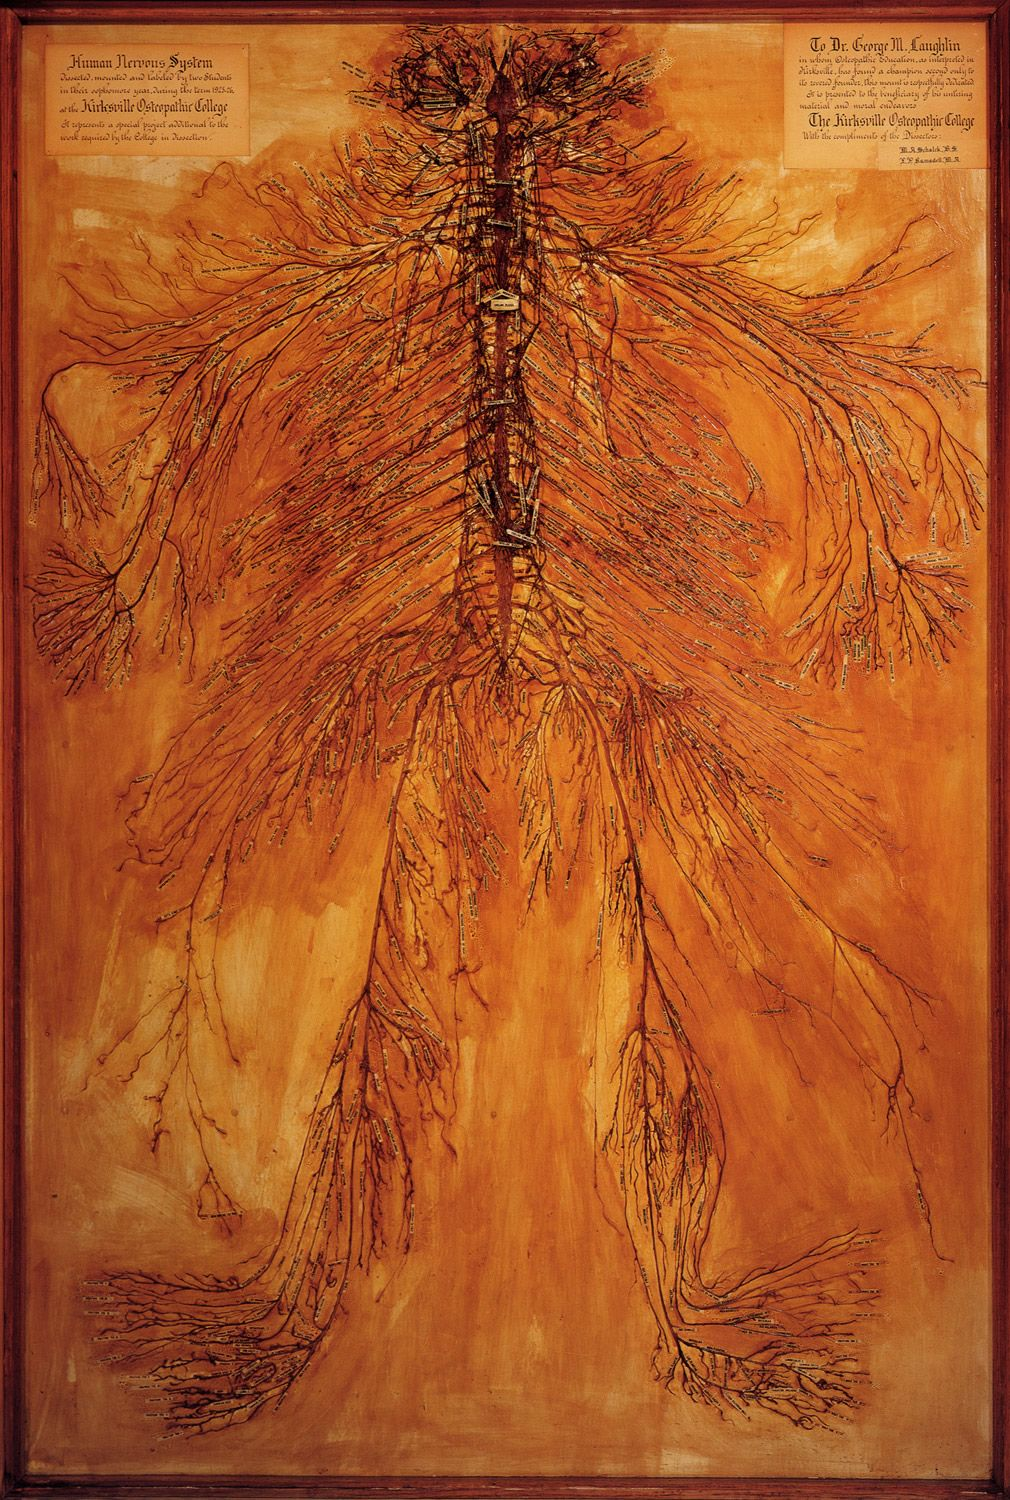 medium resolution of body and light photo human nervous system systems art medical history human